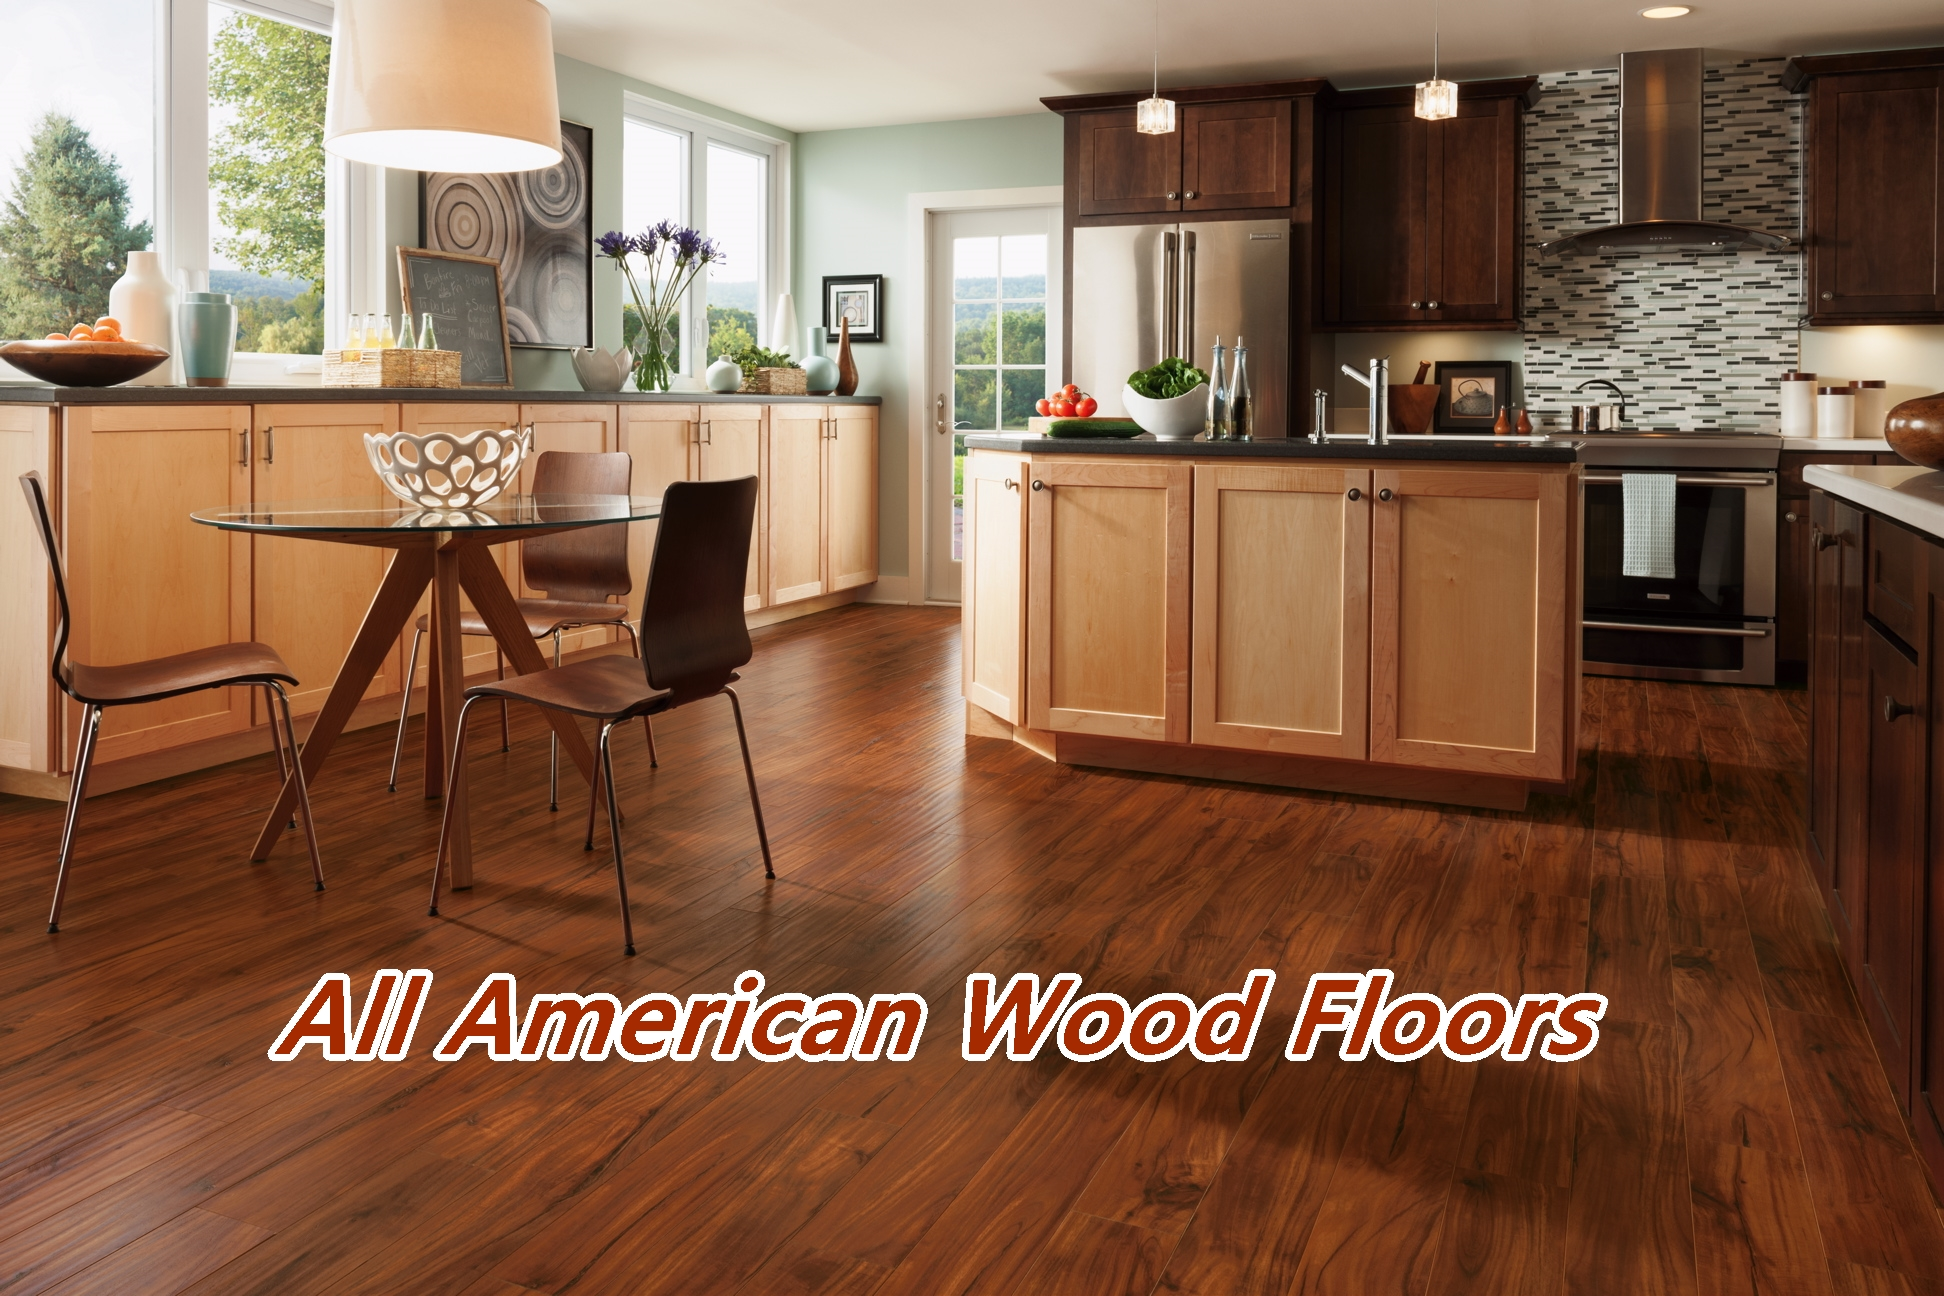 Wood Floors In Kitchens All American Wood Floors Orlando Winter Park Melbourne